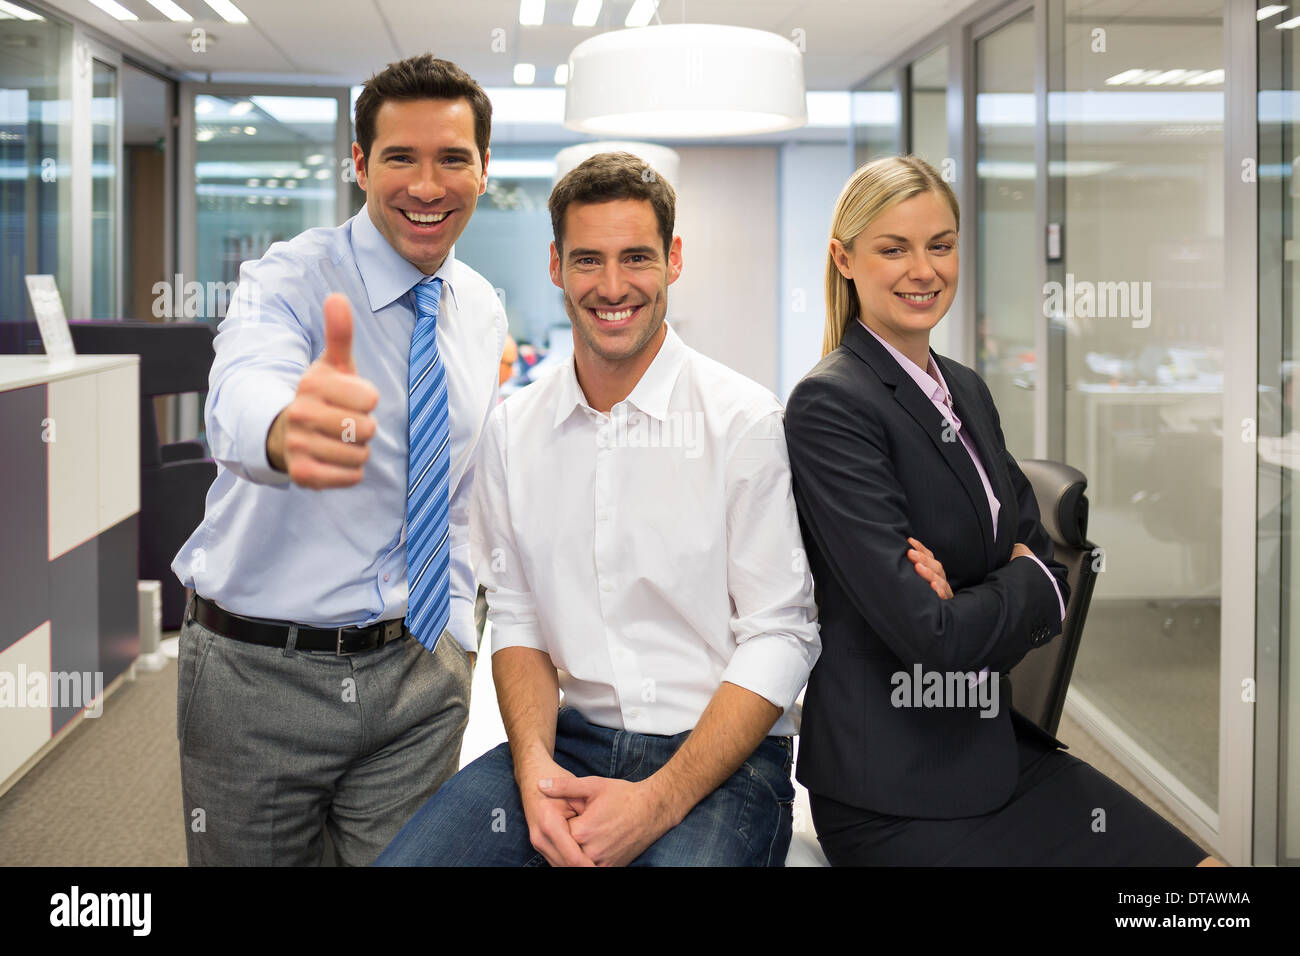 Portrait of joyful business team, man showing thumb up, office background - Stock Image